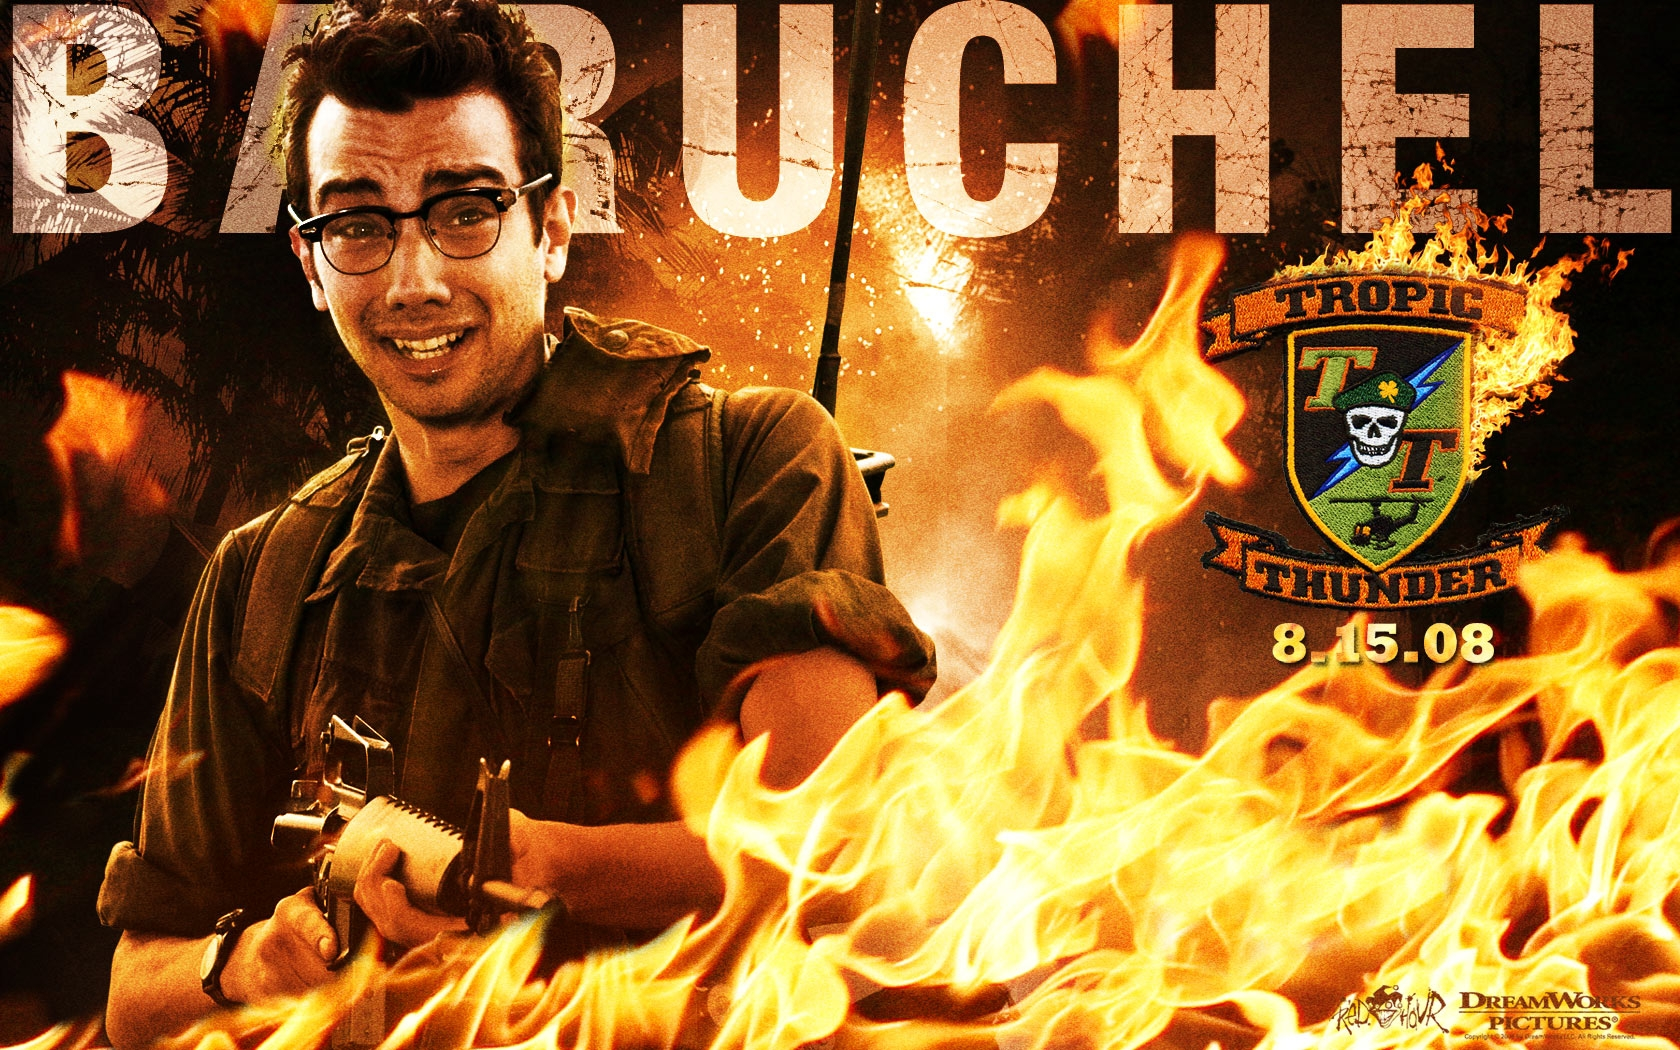 Wallpaper di Tropic Thunder